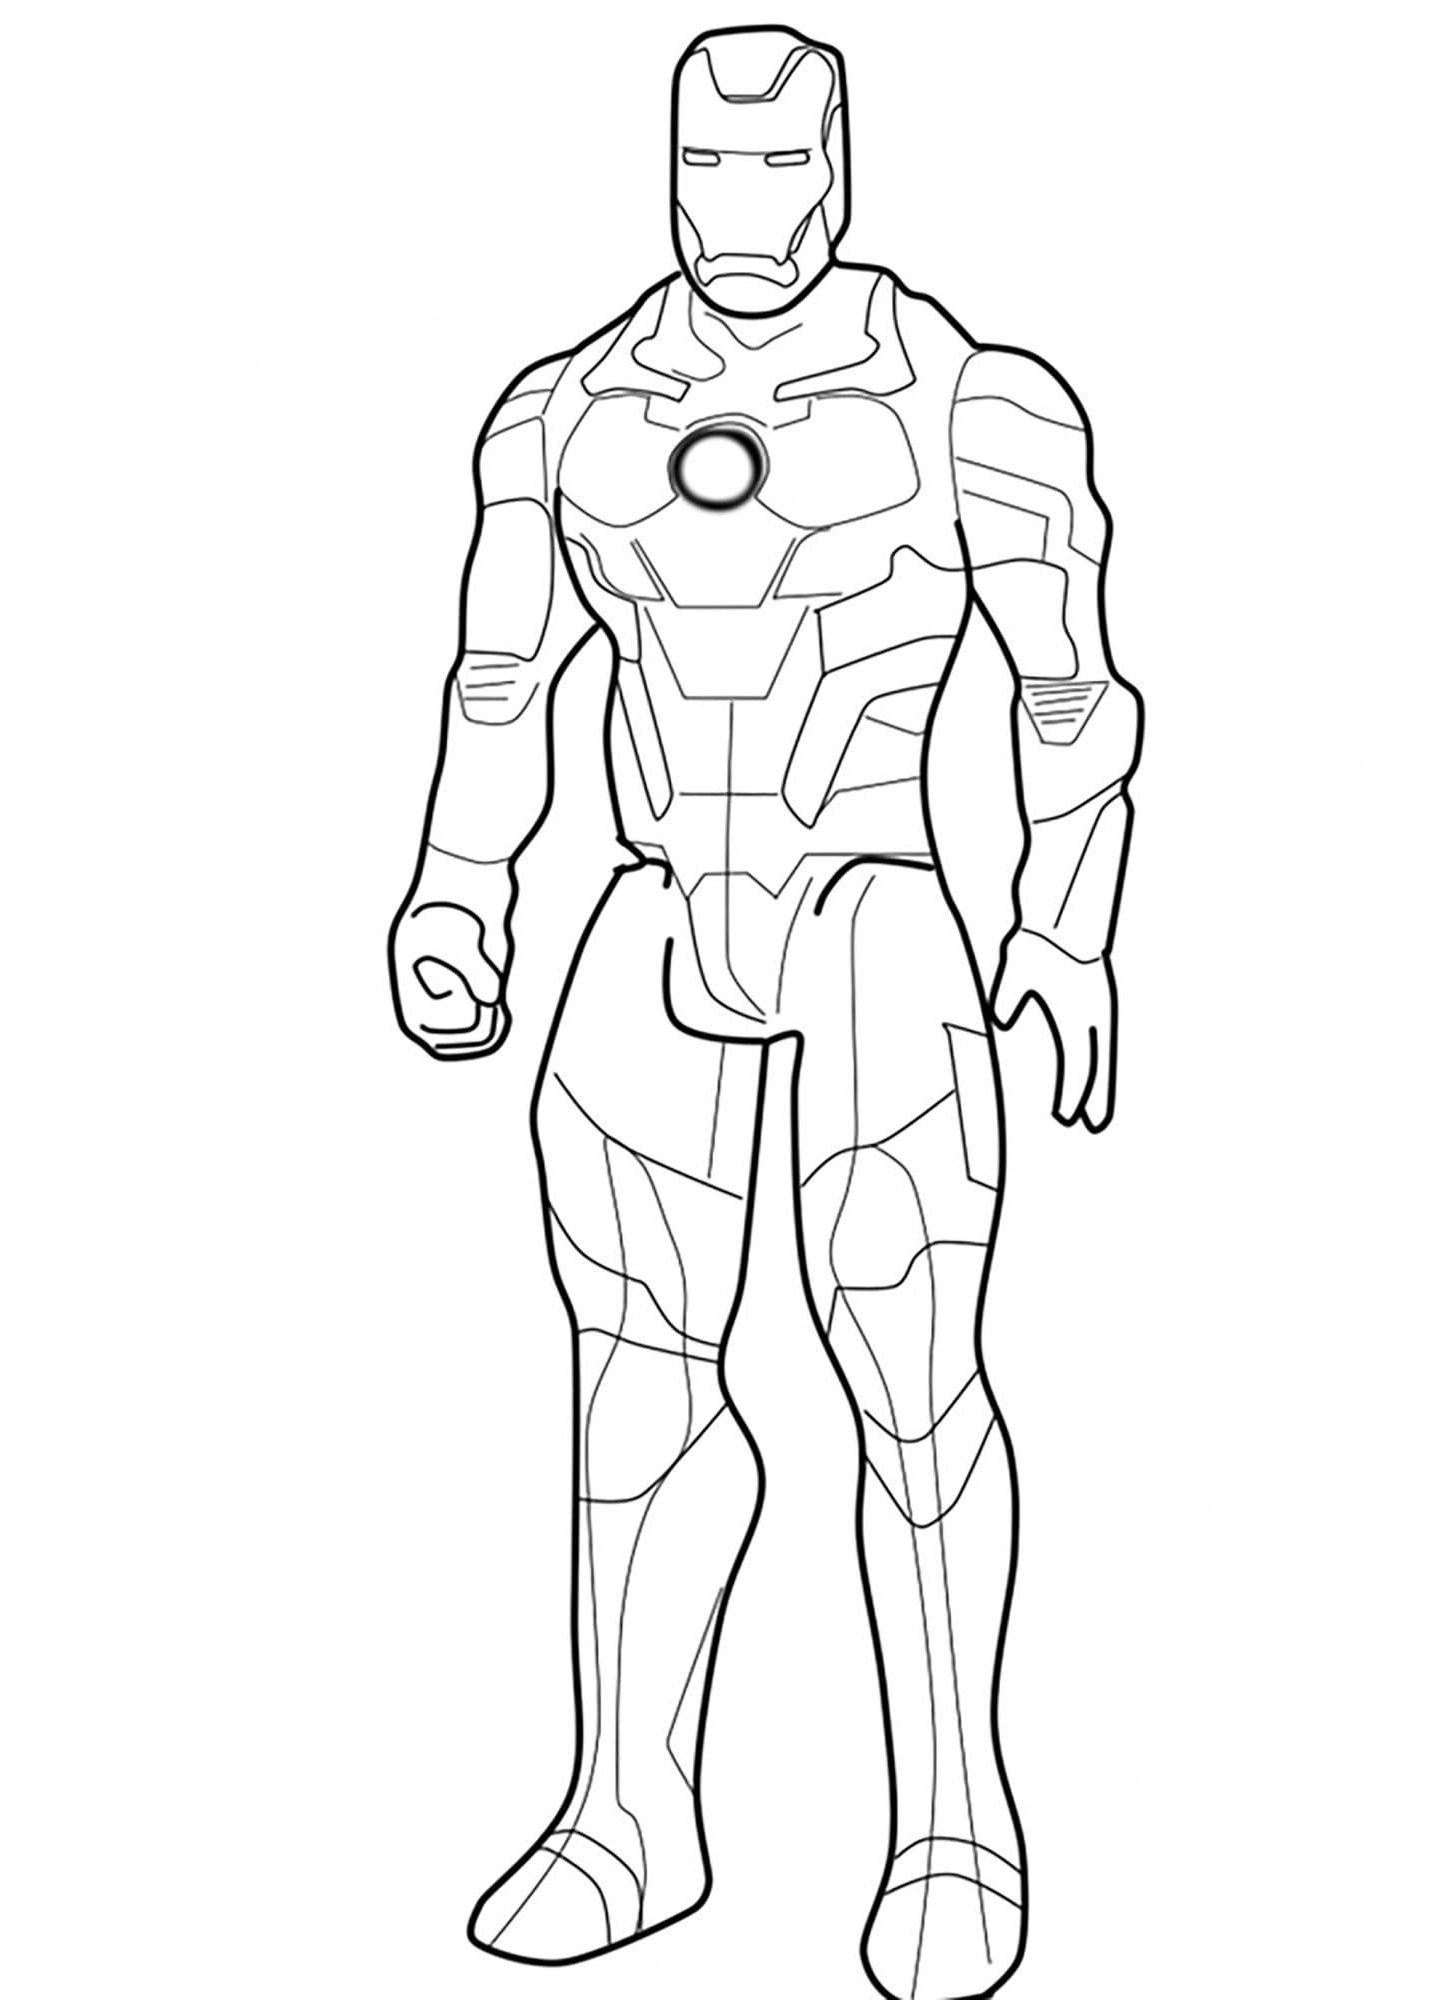 Ironman Coloring Pages - Free Printable Coloring Pages for ...